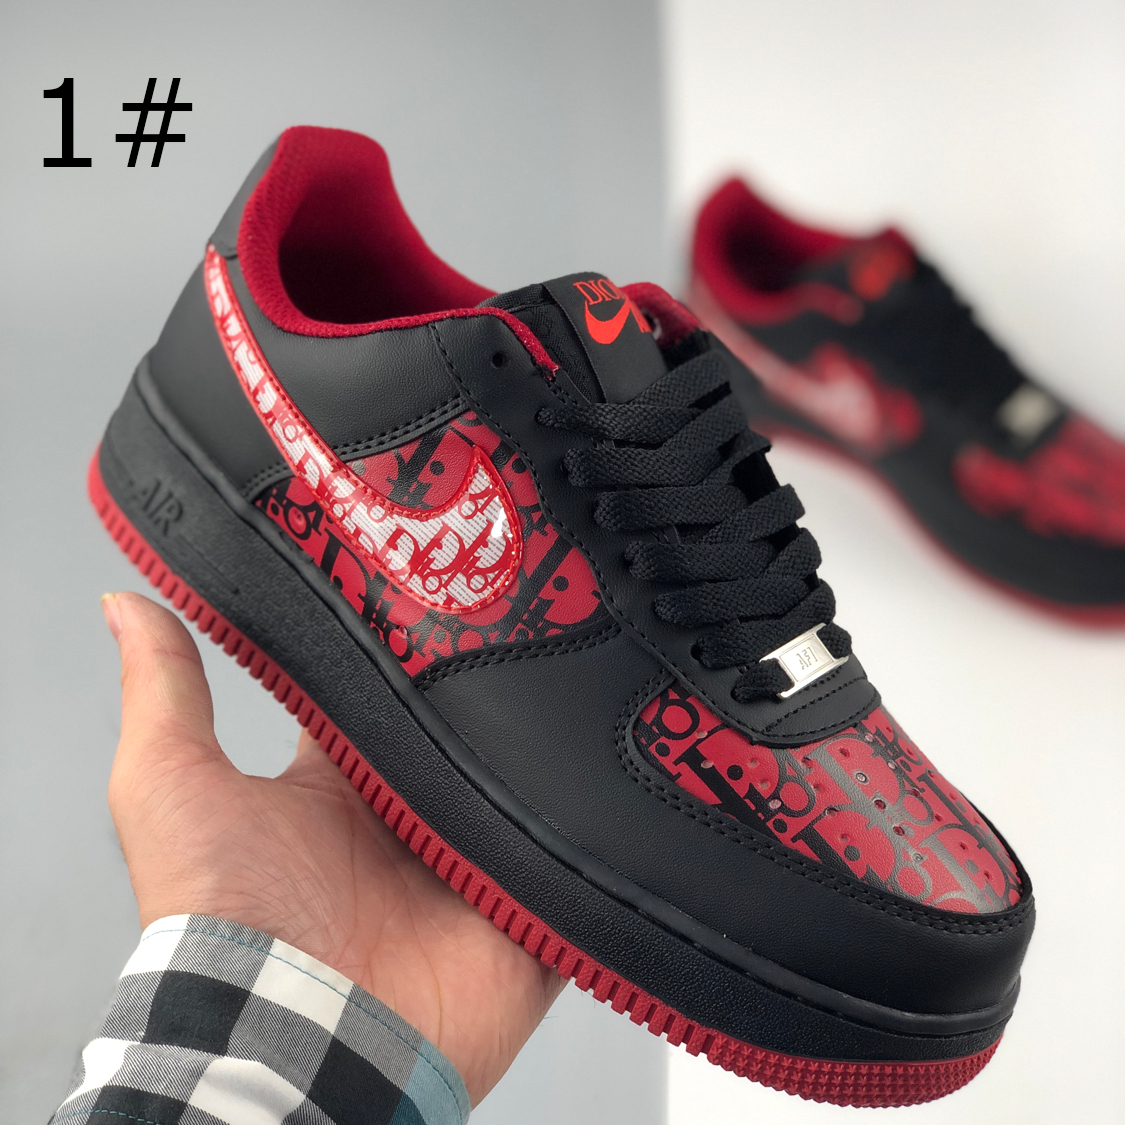 Image of Nike Dior Air Force 1 printed flat casual sneakers for men and women-1